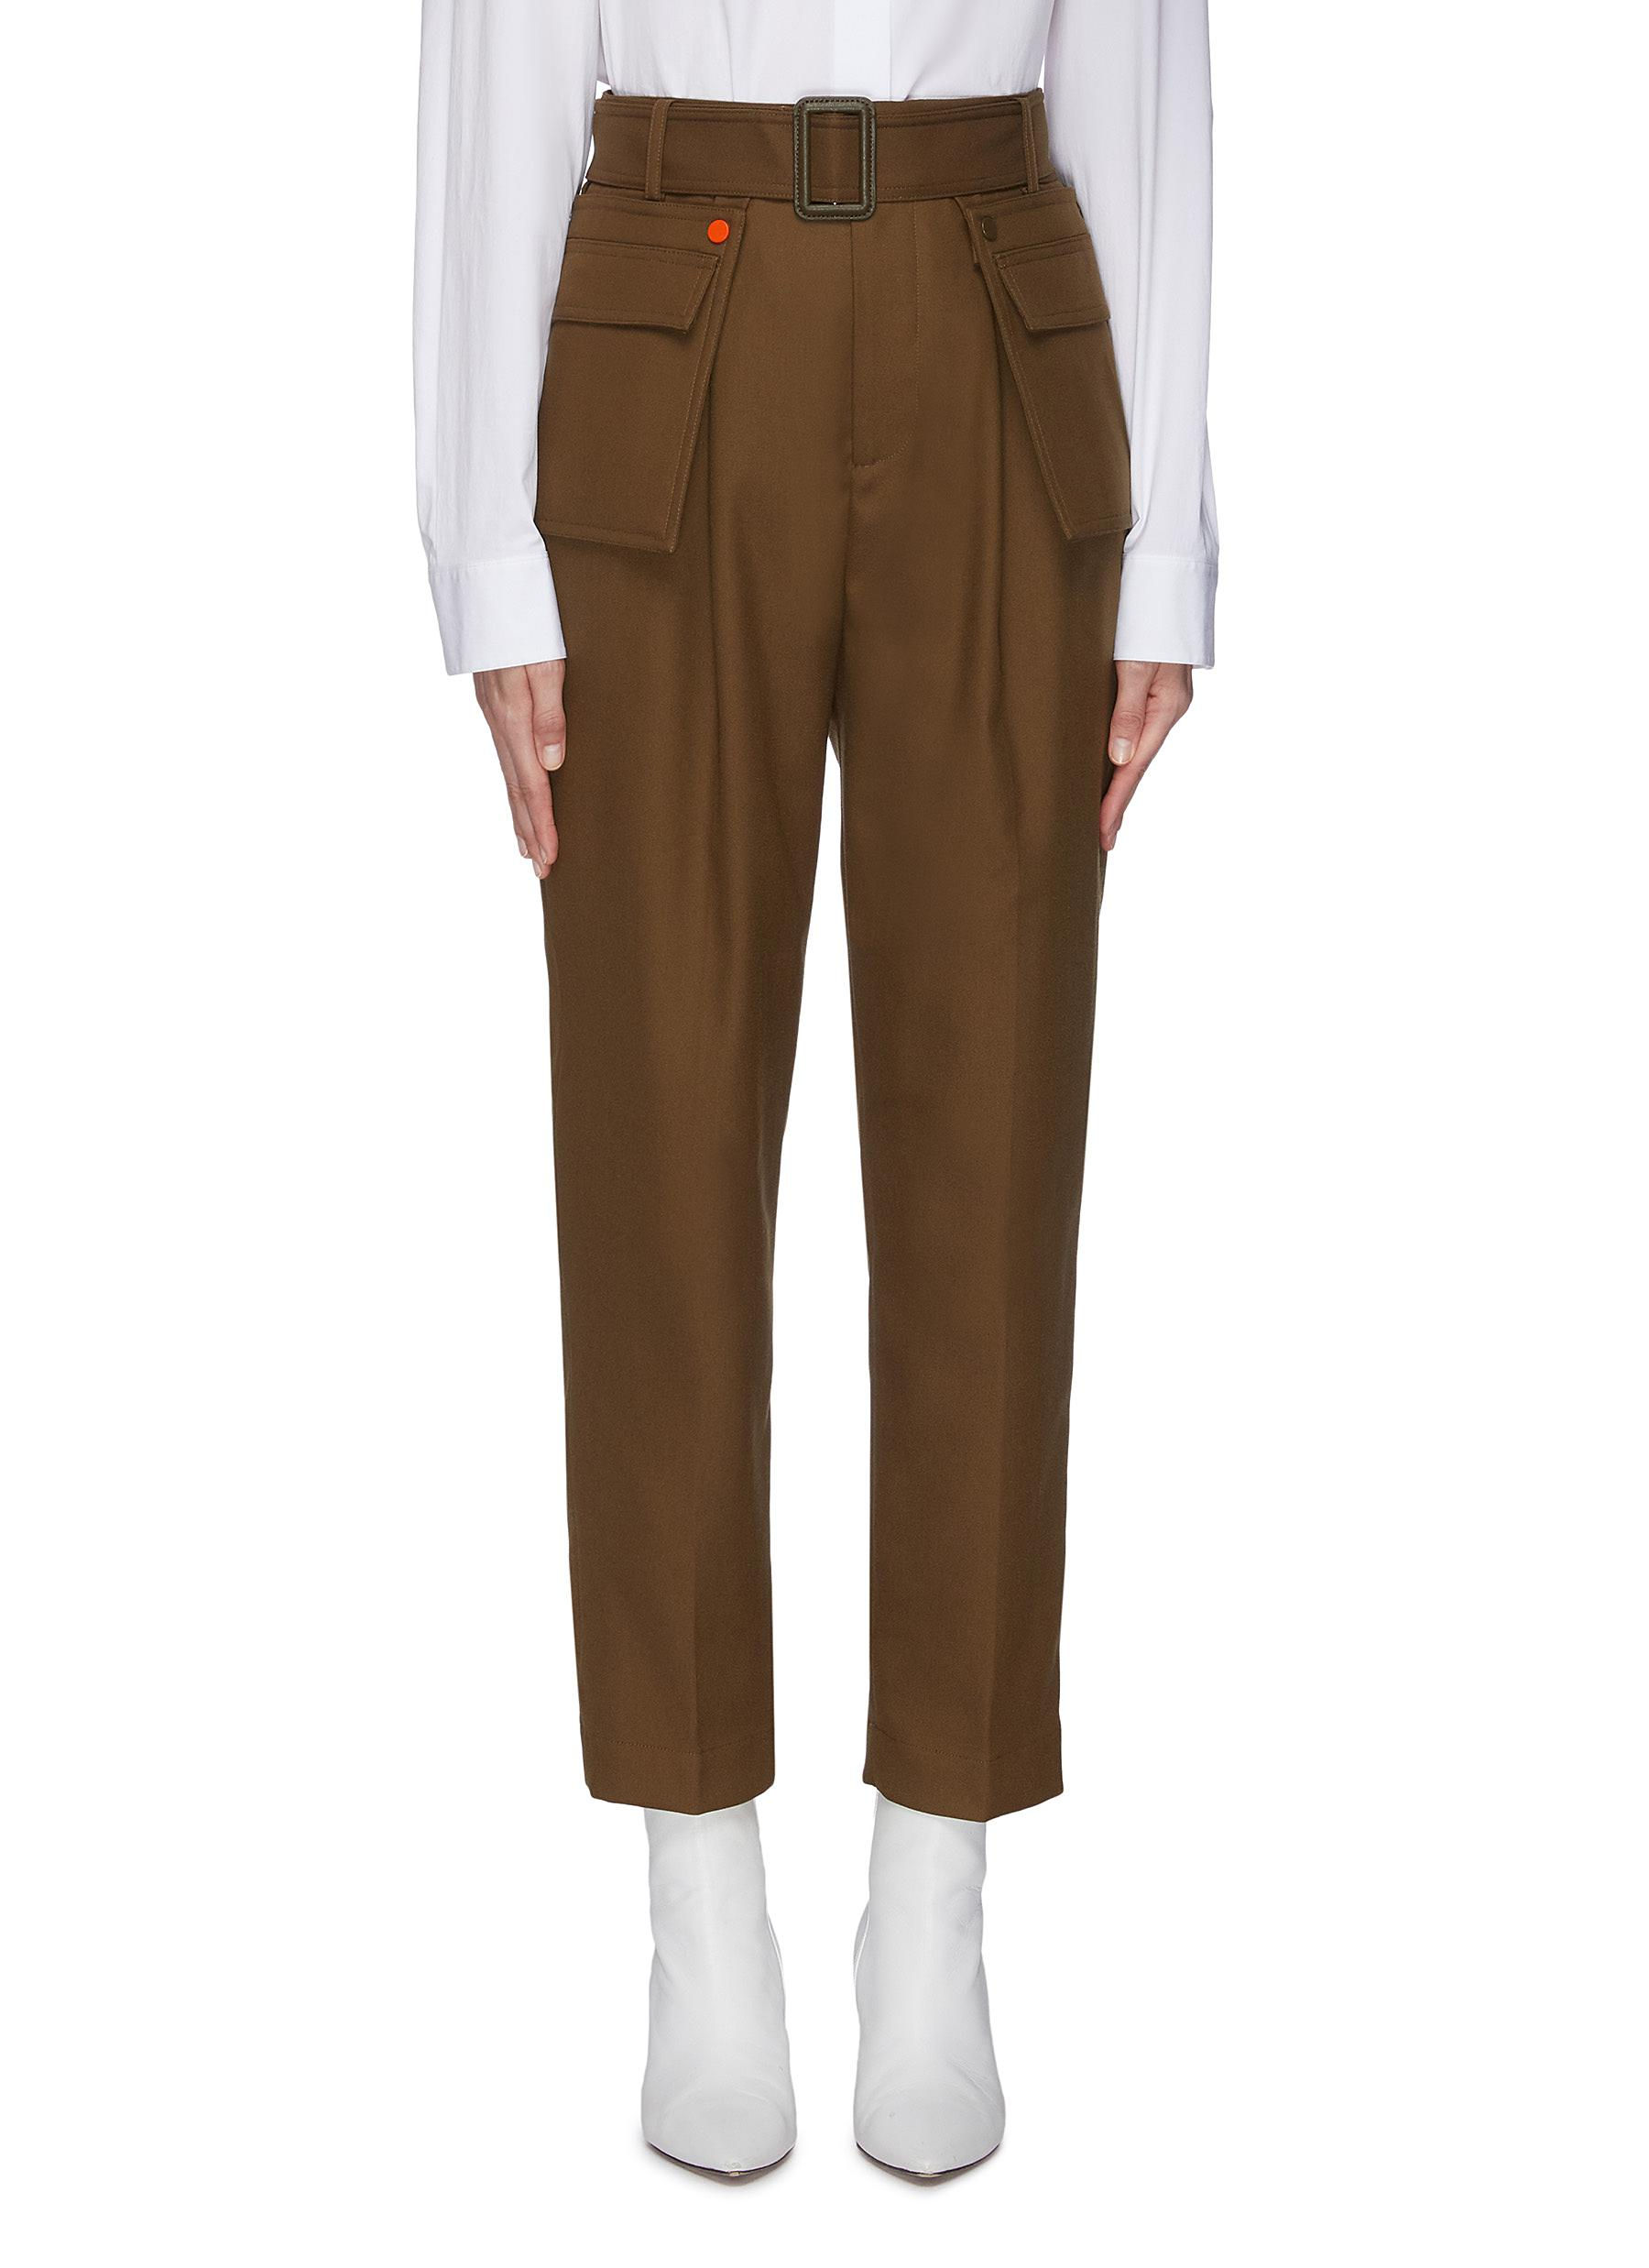 Buy Comme Moi Pants & Shorts Flap pocket belted pants